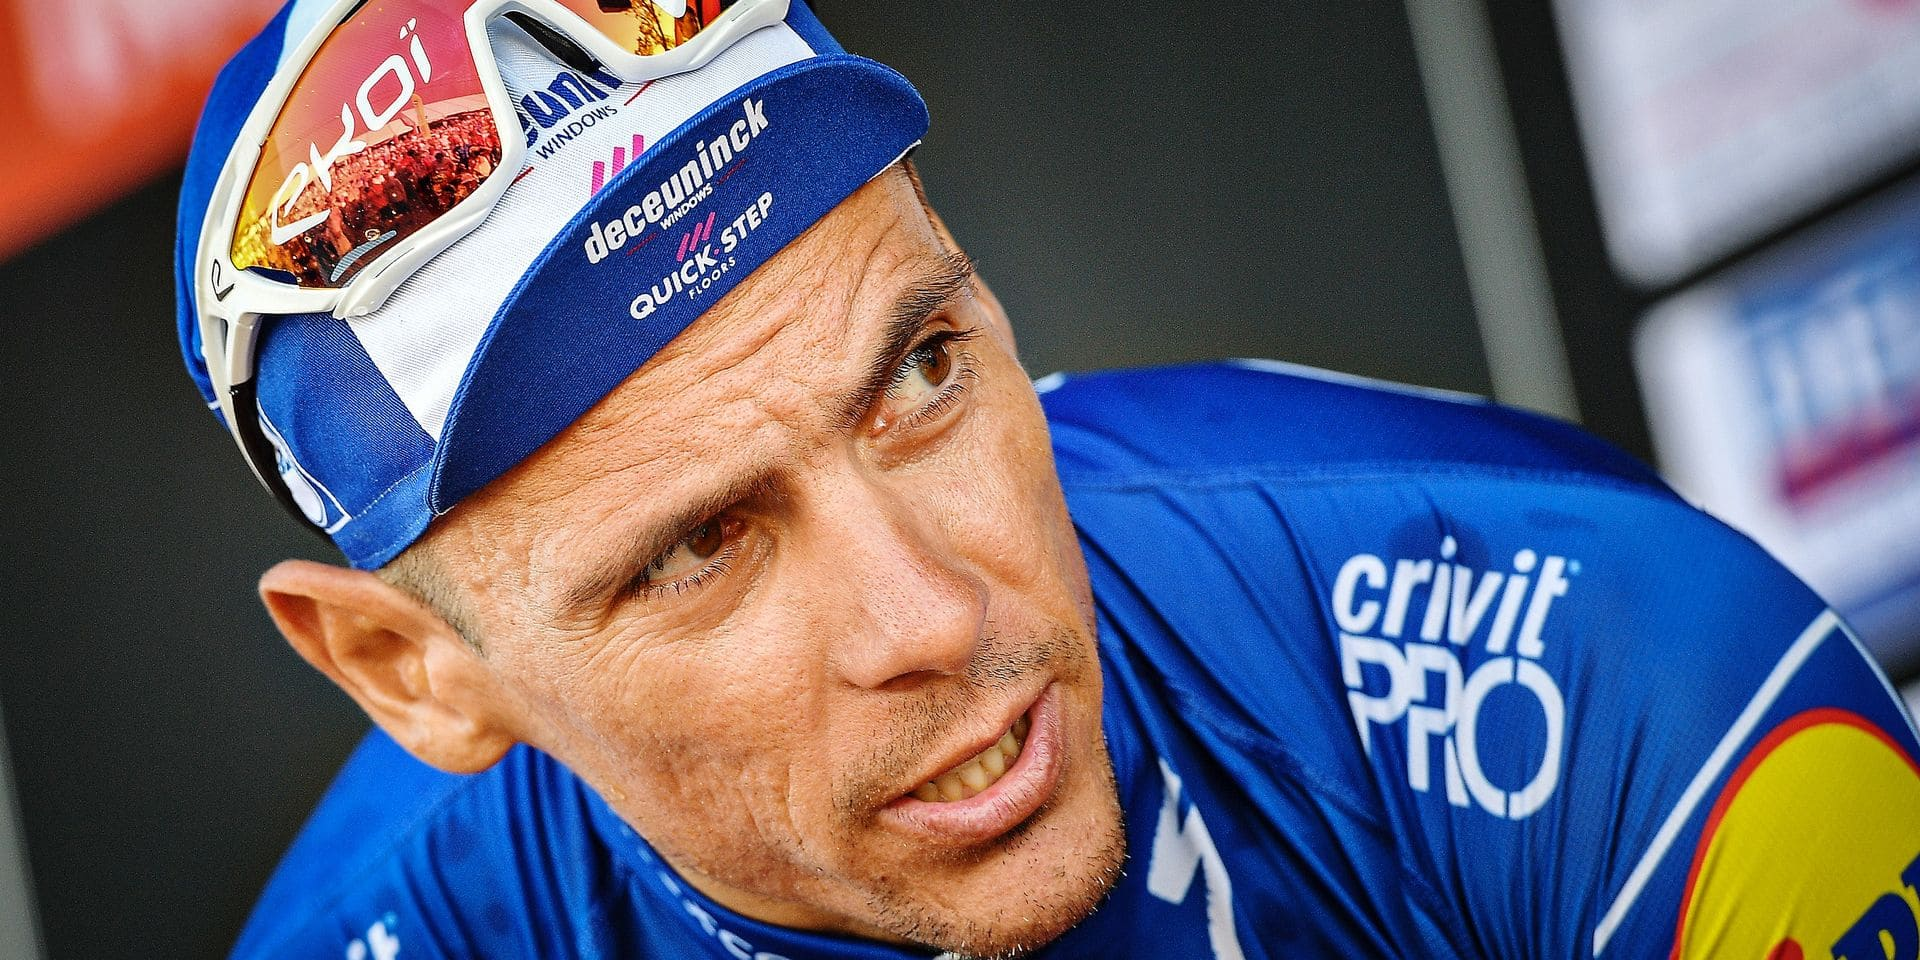 Belgian Philippe Gilbert of Deceuninck - Quick-Step pictured after the Halle Ingooigem one day cycling race, 200,9 km from Halle to Ingooigem, race 5 out of 9 of the Bingoal cycling cup, Wednesday 26 June 2019. BELGA PHOTO DAVID STOCKMAN